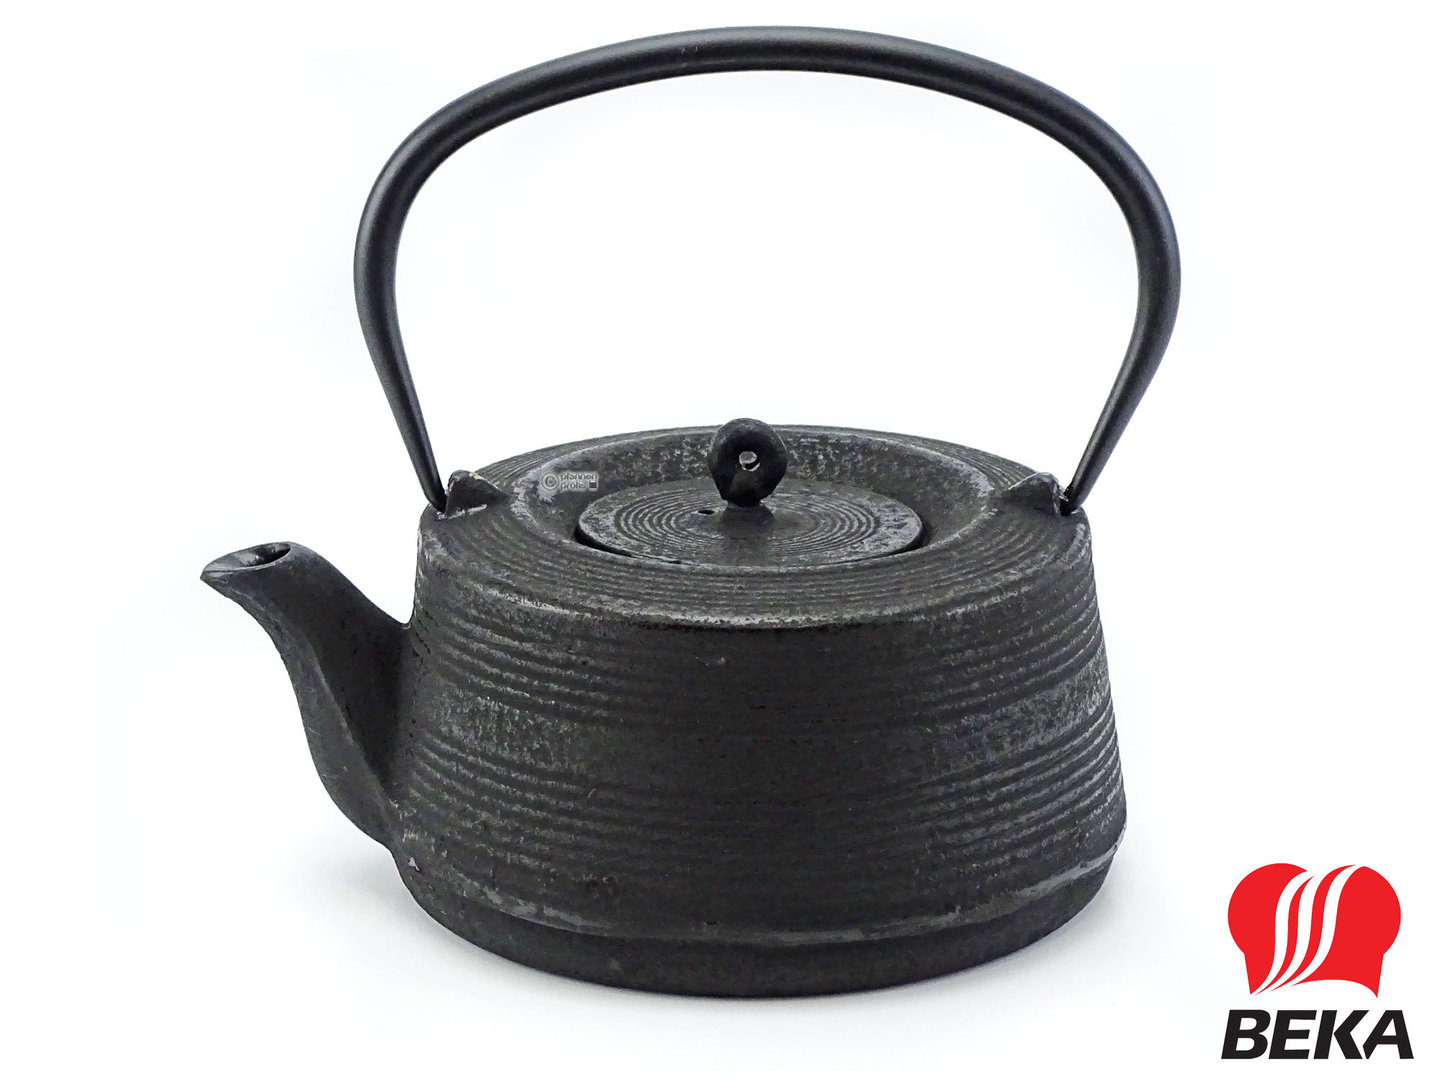 BEKA cast iron teapot XIA black 0,6 L with tea strainer